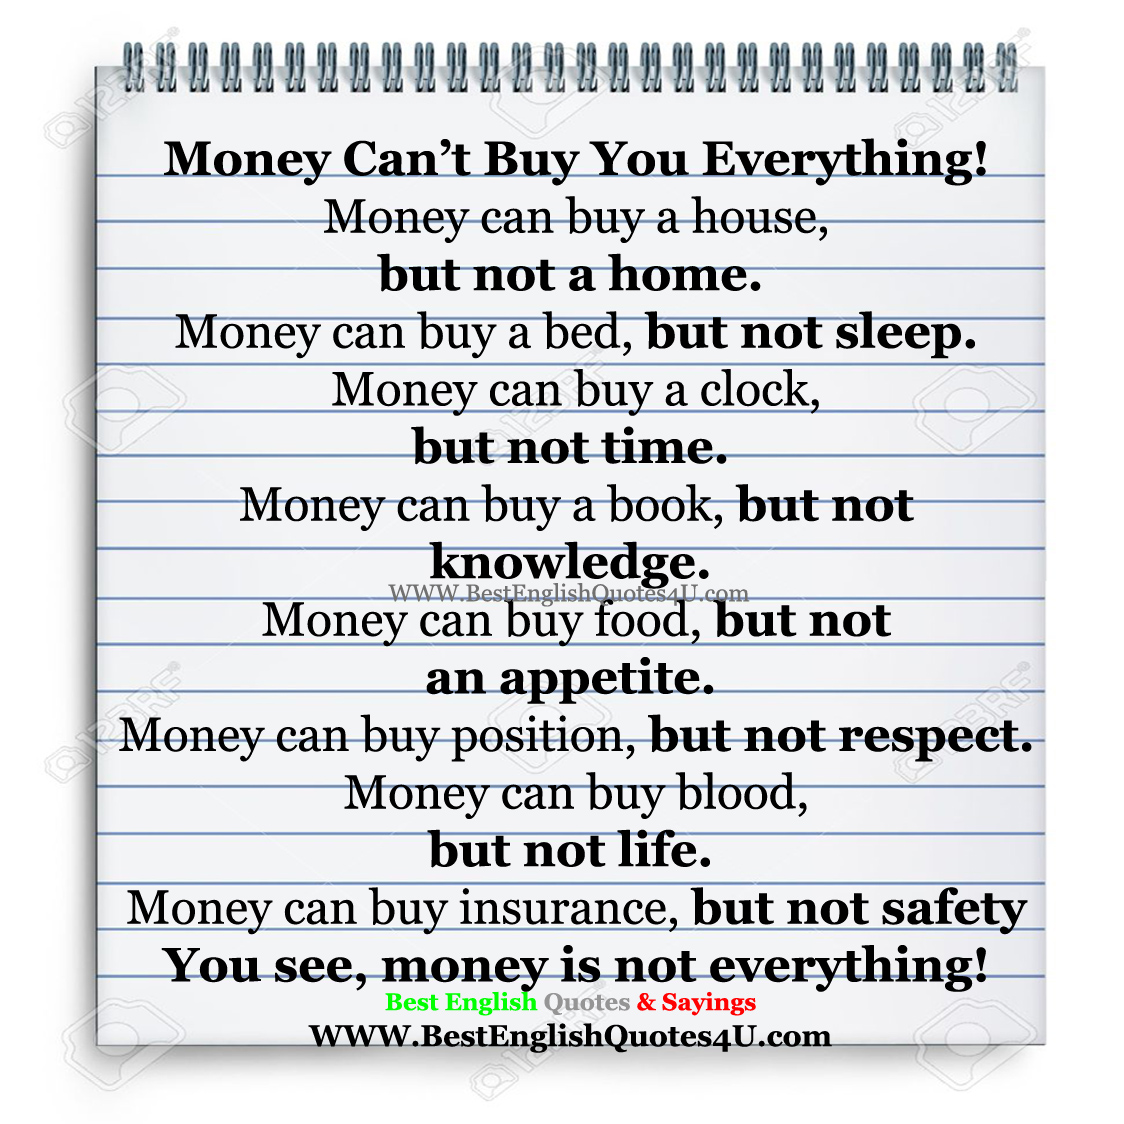 Life Insurance Sayings Quotes Money Can't Buy You Everything  Best'english'quotes'&'sayings